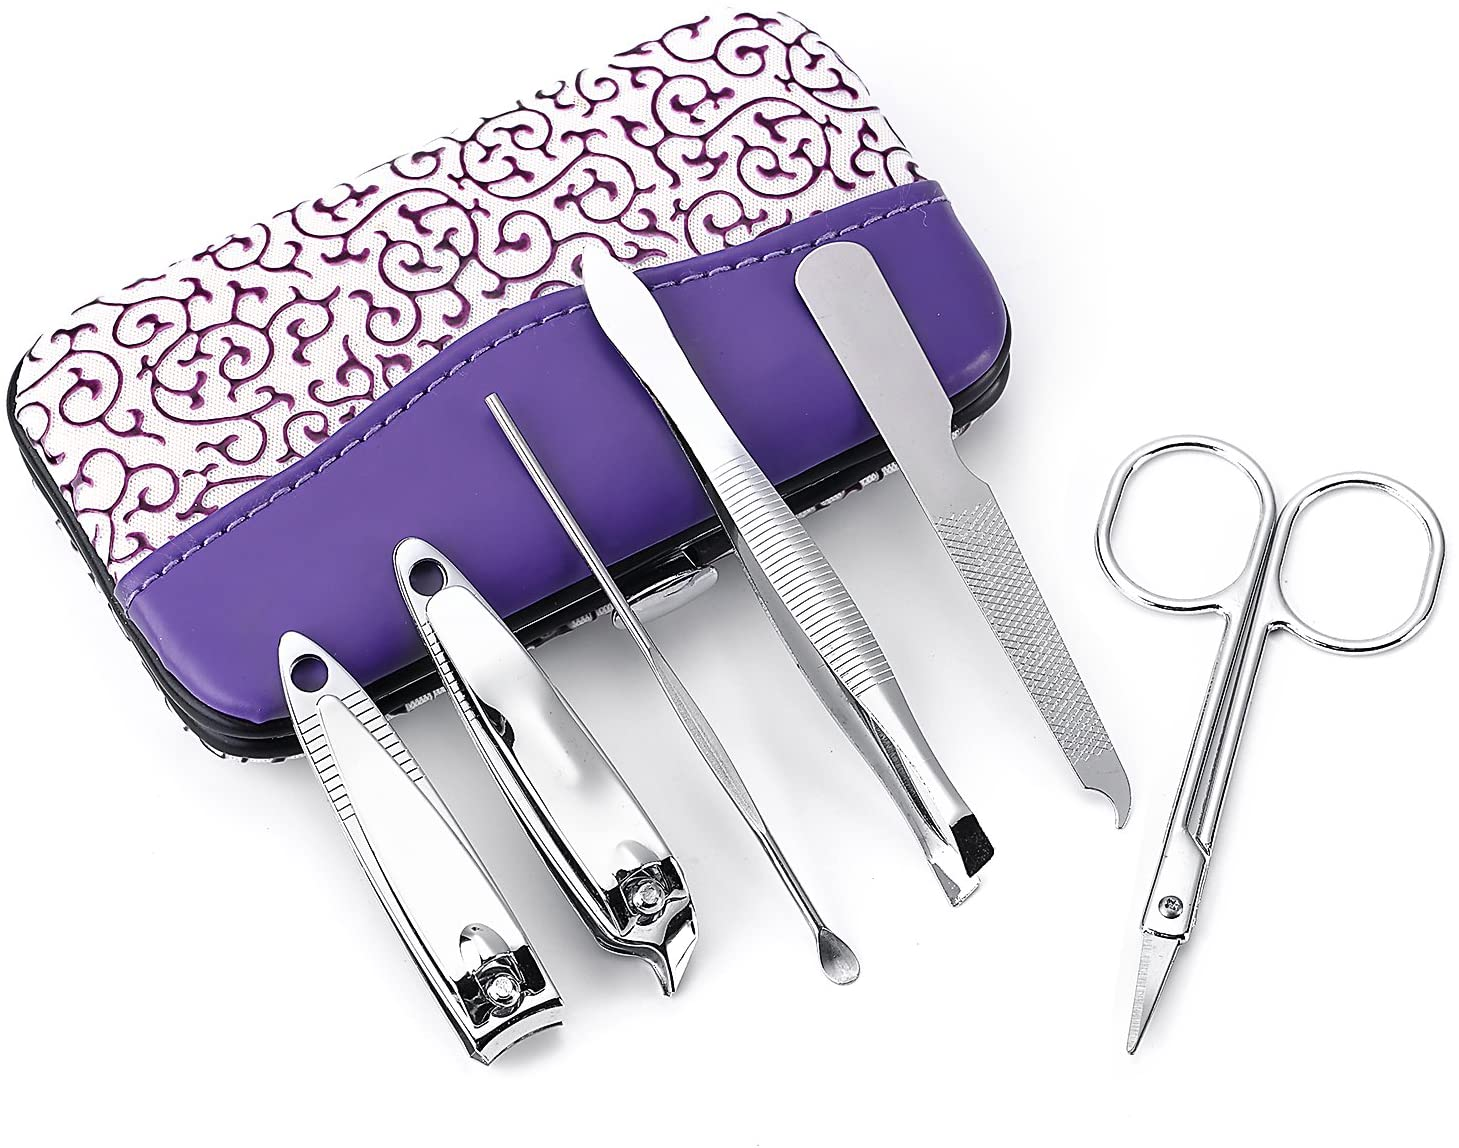 BelleSha Nail Kit, Manicure Pedicure Travel Grooming - 6 Piece